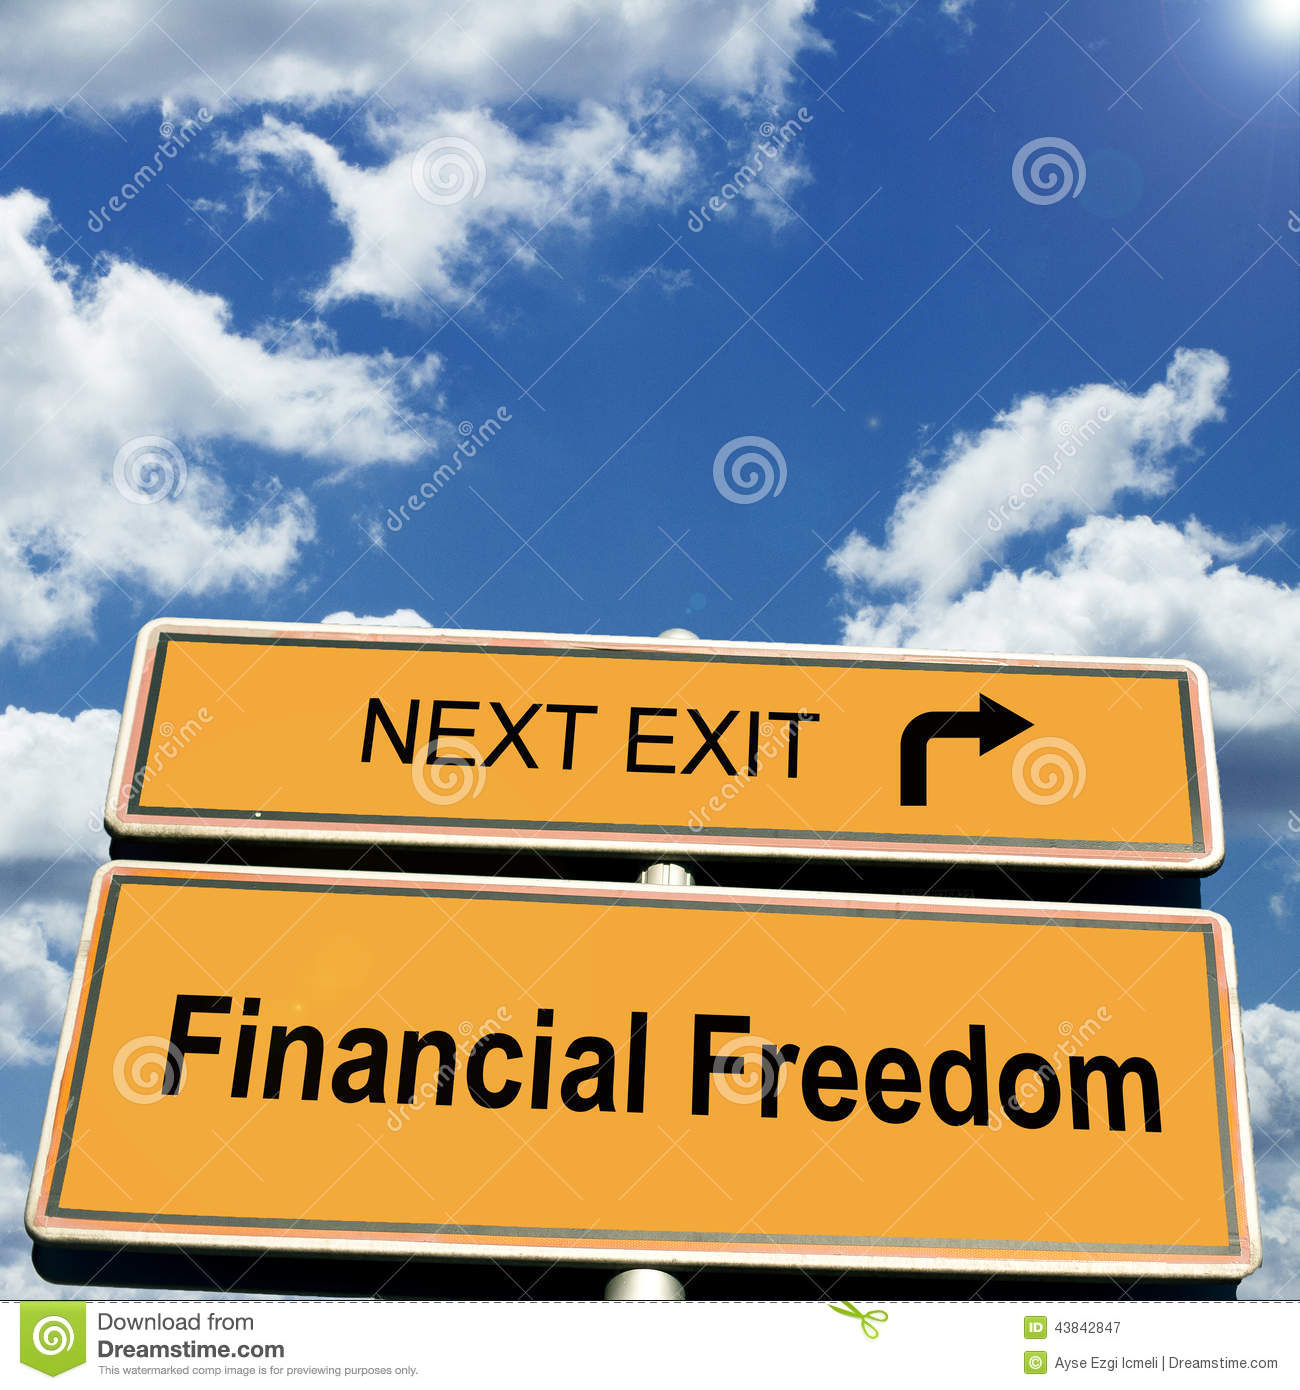 Finance Sign: Financial Freedom